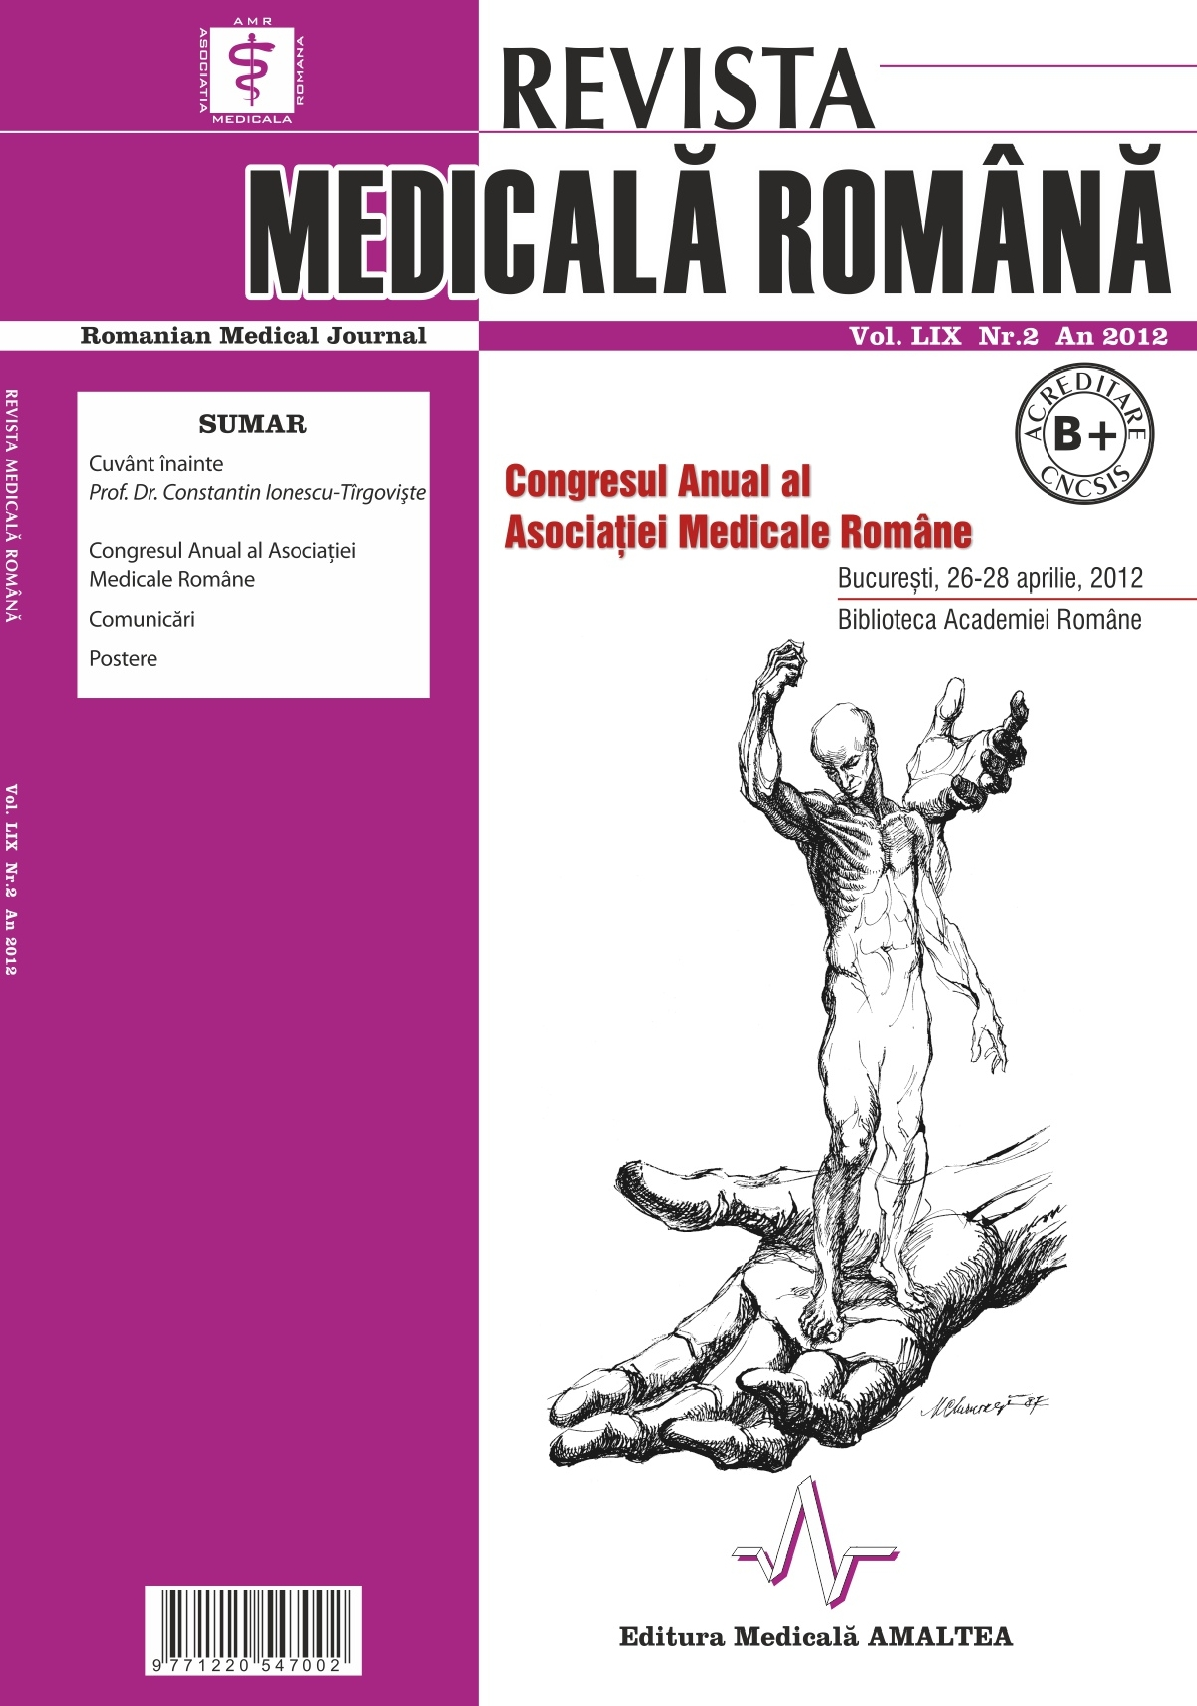 REVISTA MEDICALA ROMANA - Romanian Medical Journal, Vol. LIX, Nr. 2, An 2012